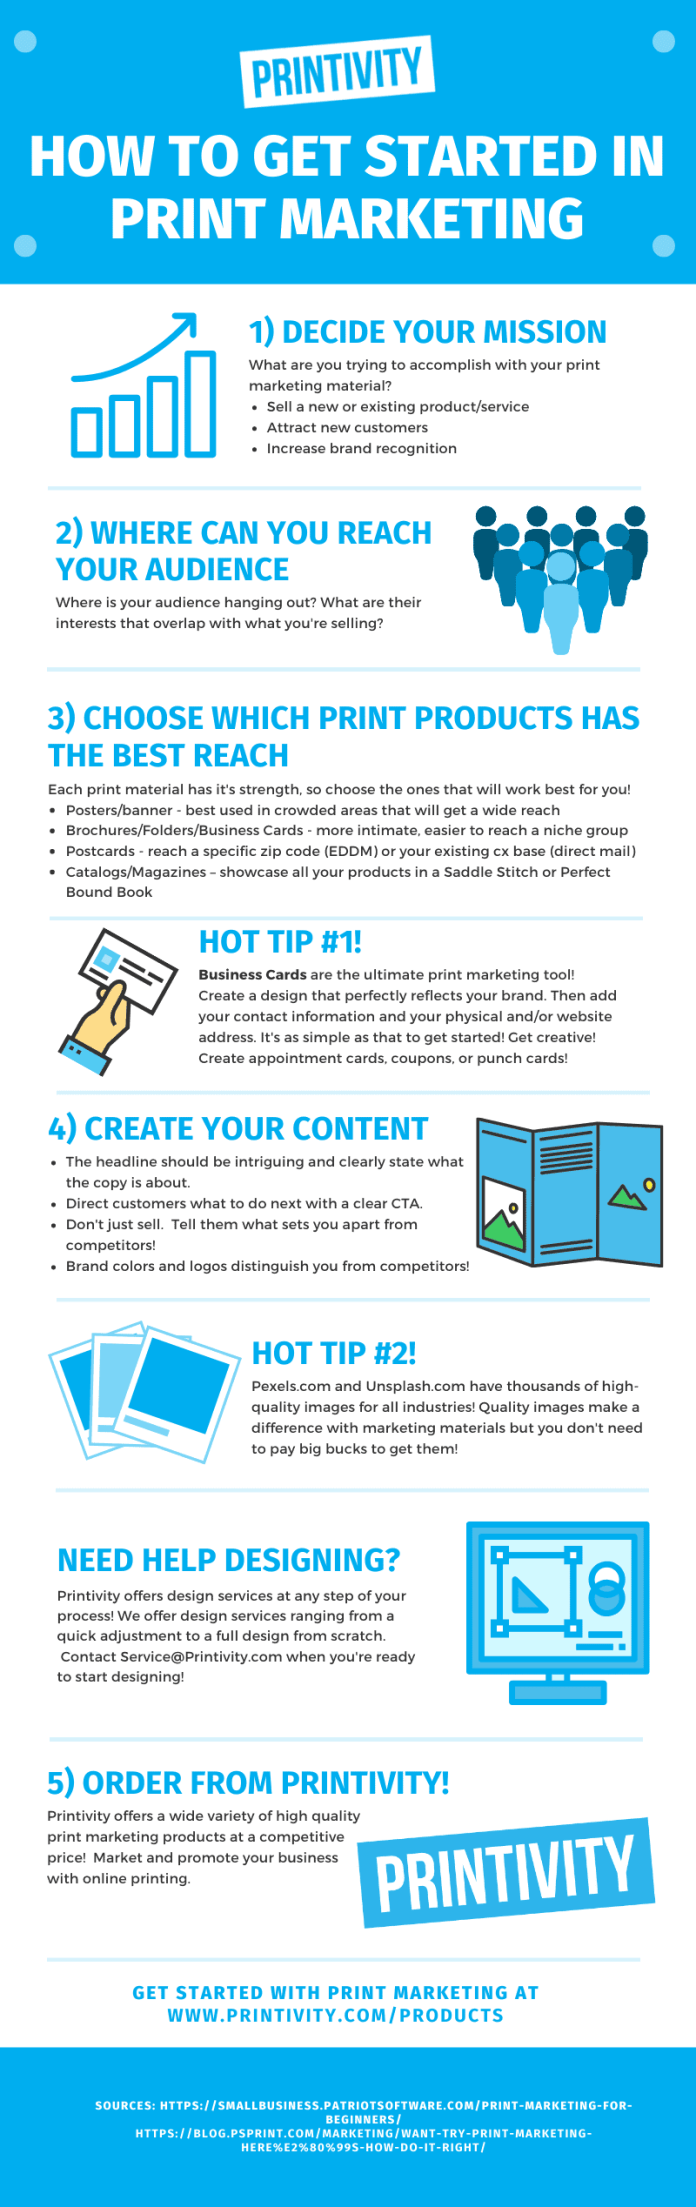 Infographic with 5 steps and 3 tips for starting print marketing.